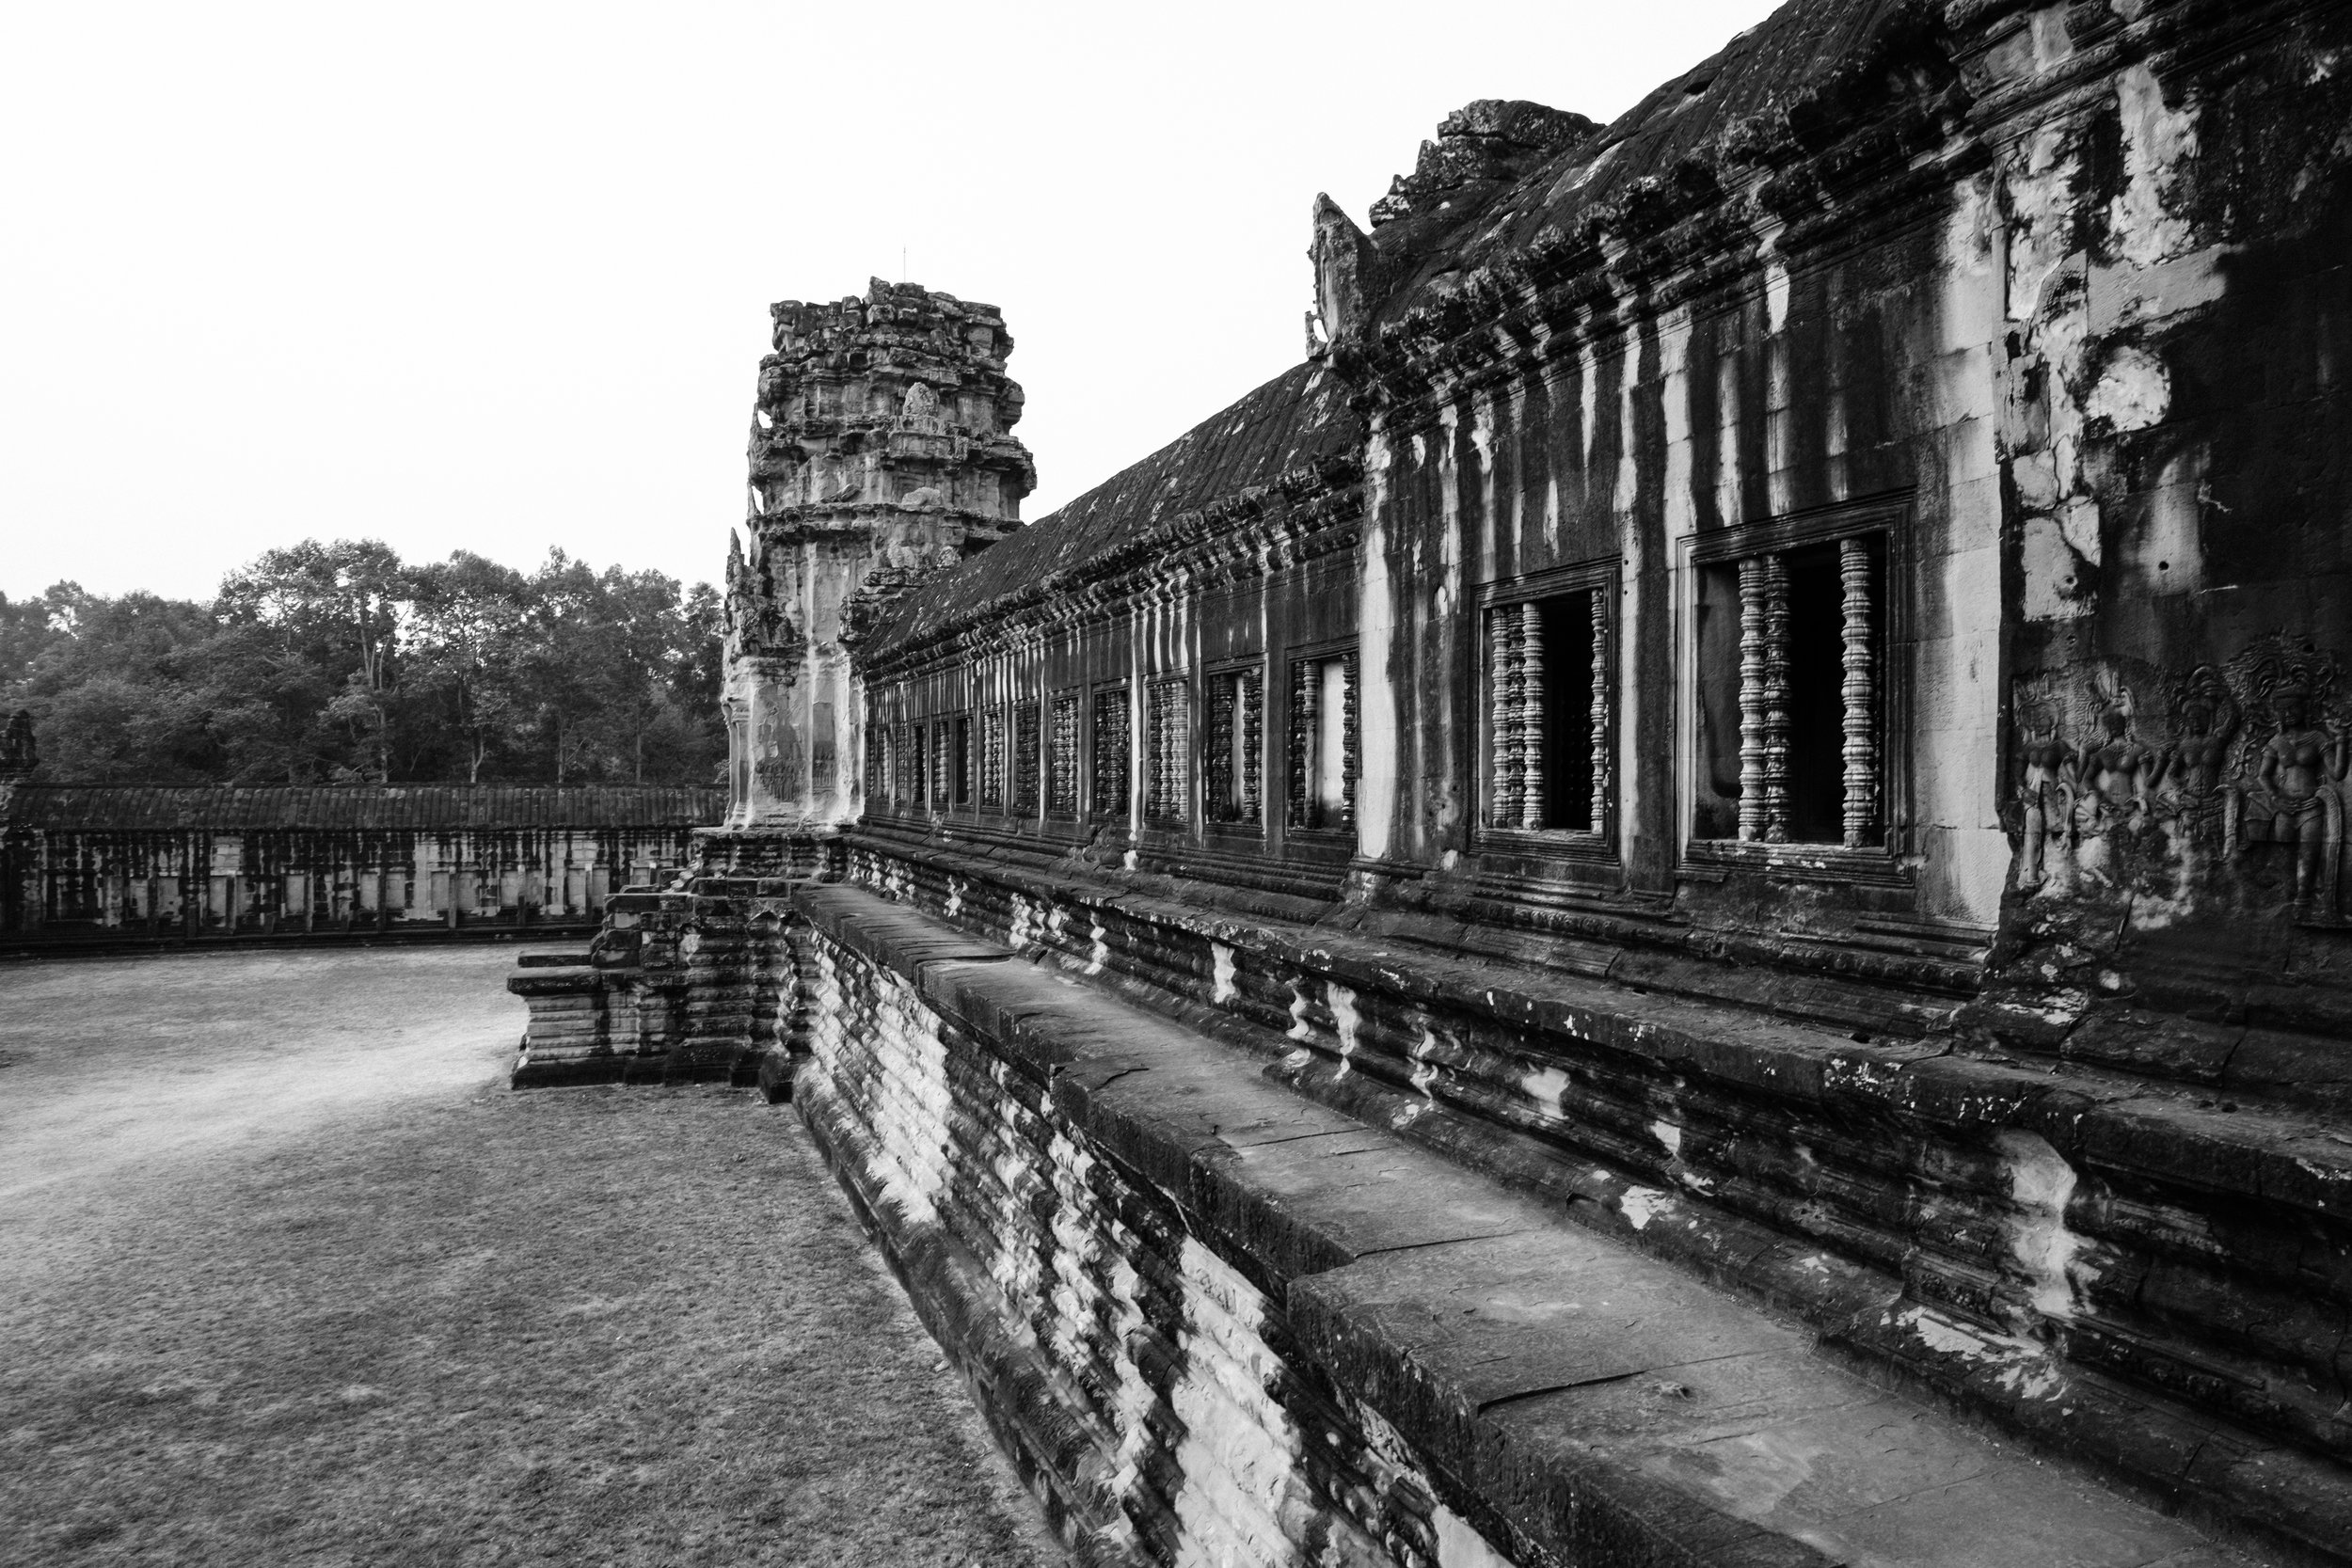 Angkor Wat in the early morning hours. We had the temple almost to ourselves.